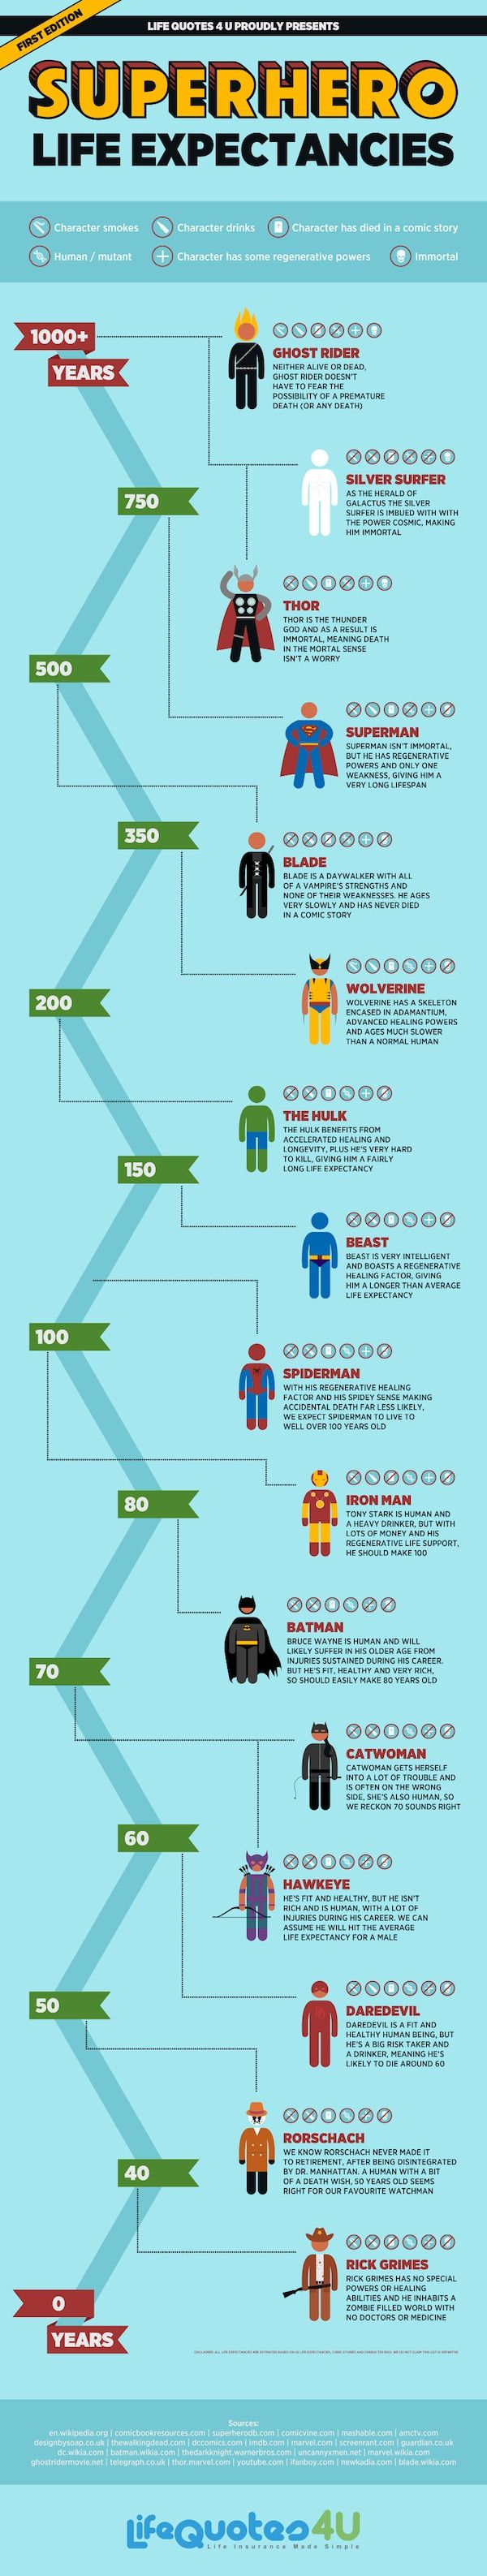 Life Expectancies Of Superheroes - how long will your favorite hero live?